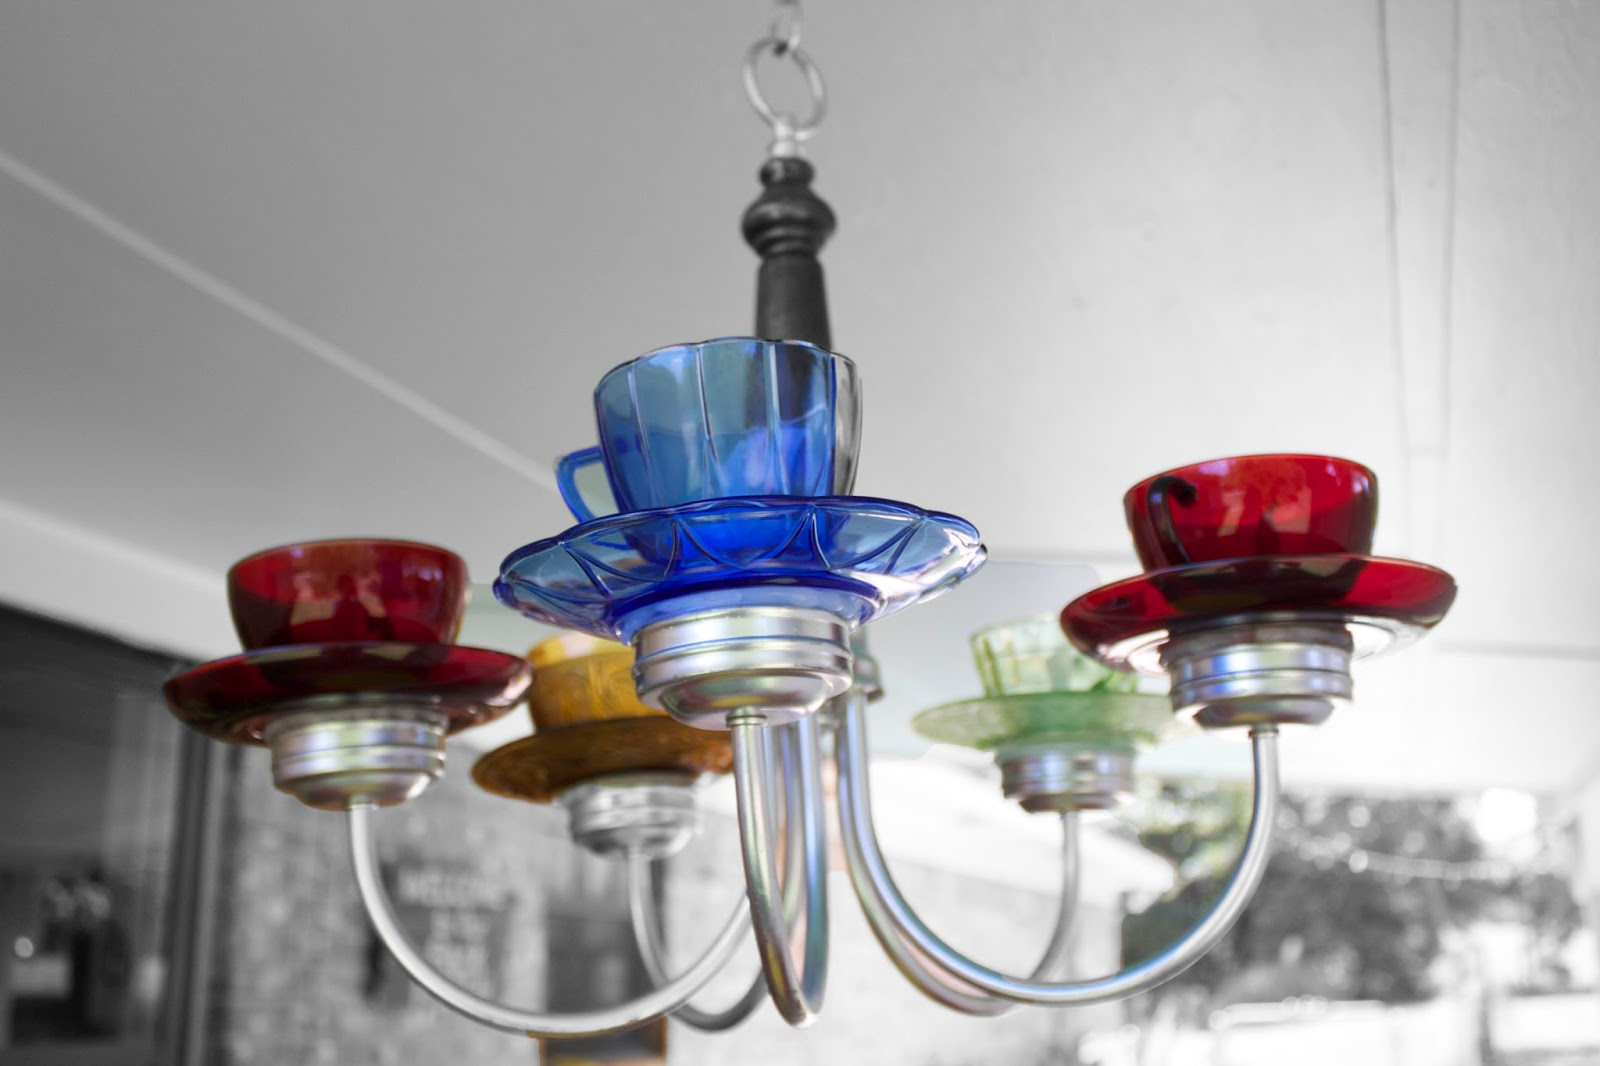 adorable teacup diy vintage youtube chandelier watch